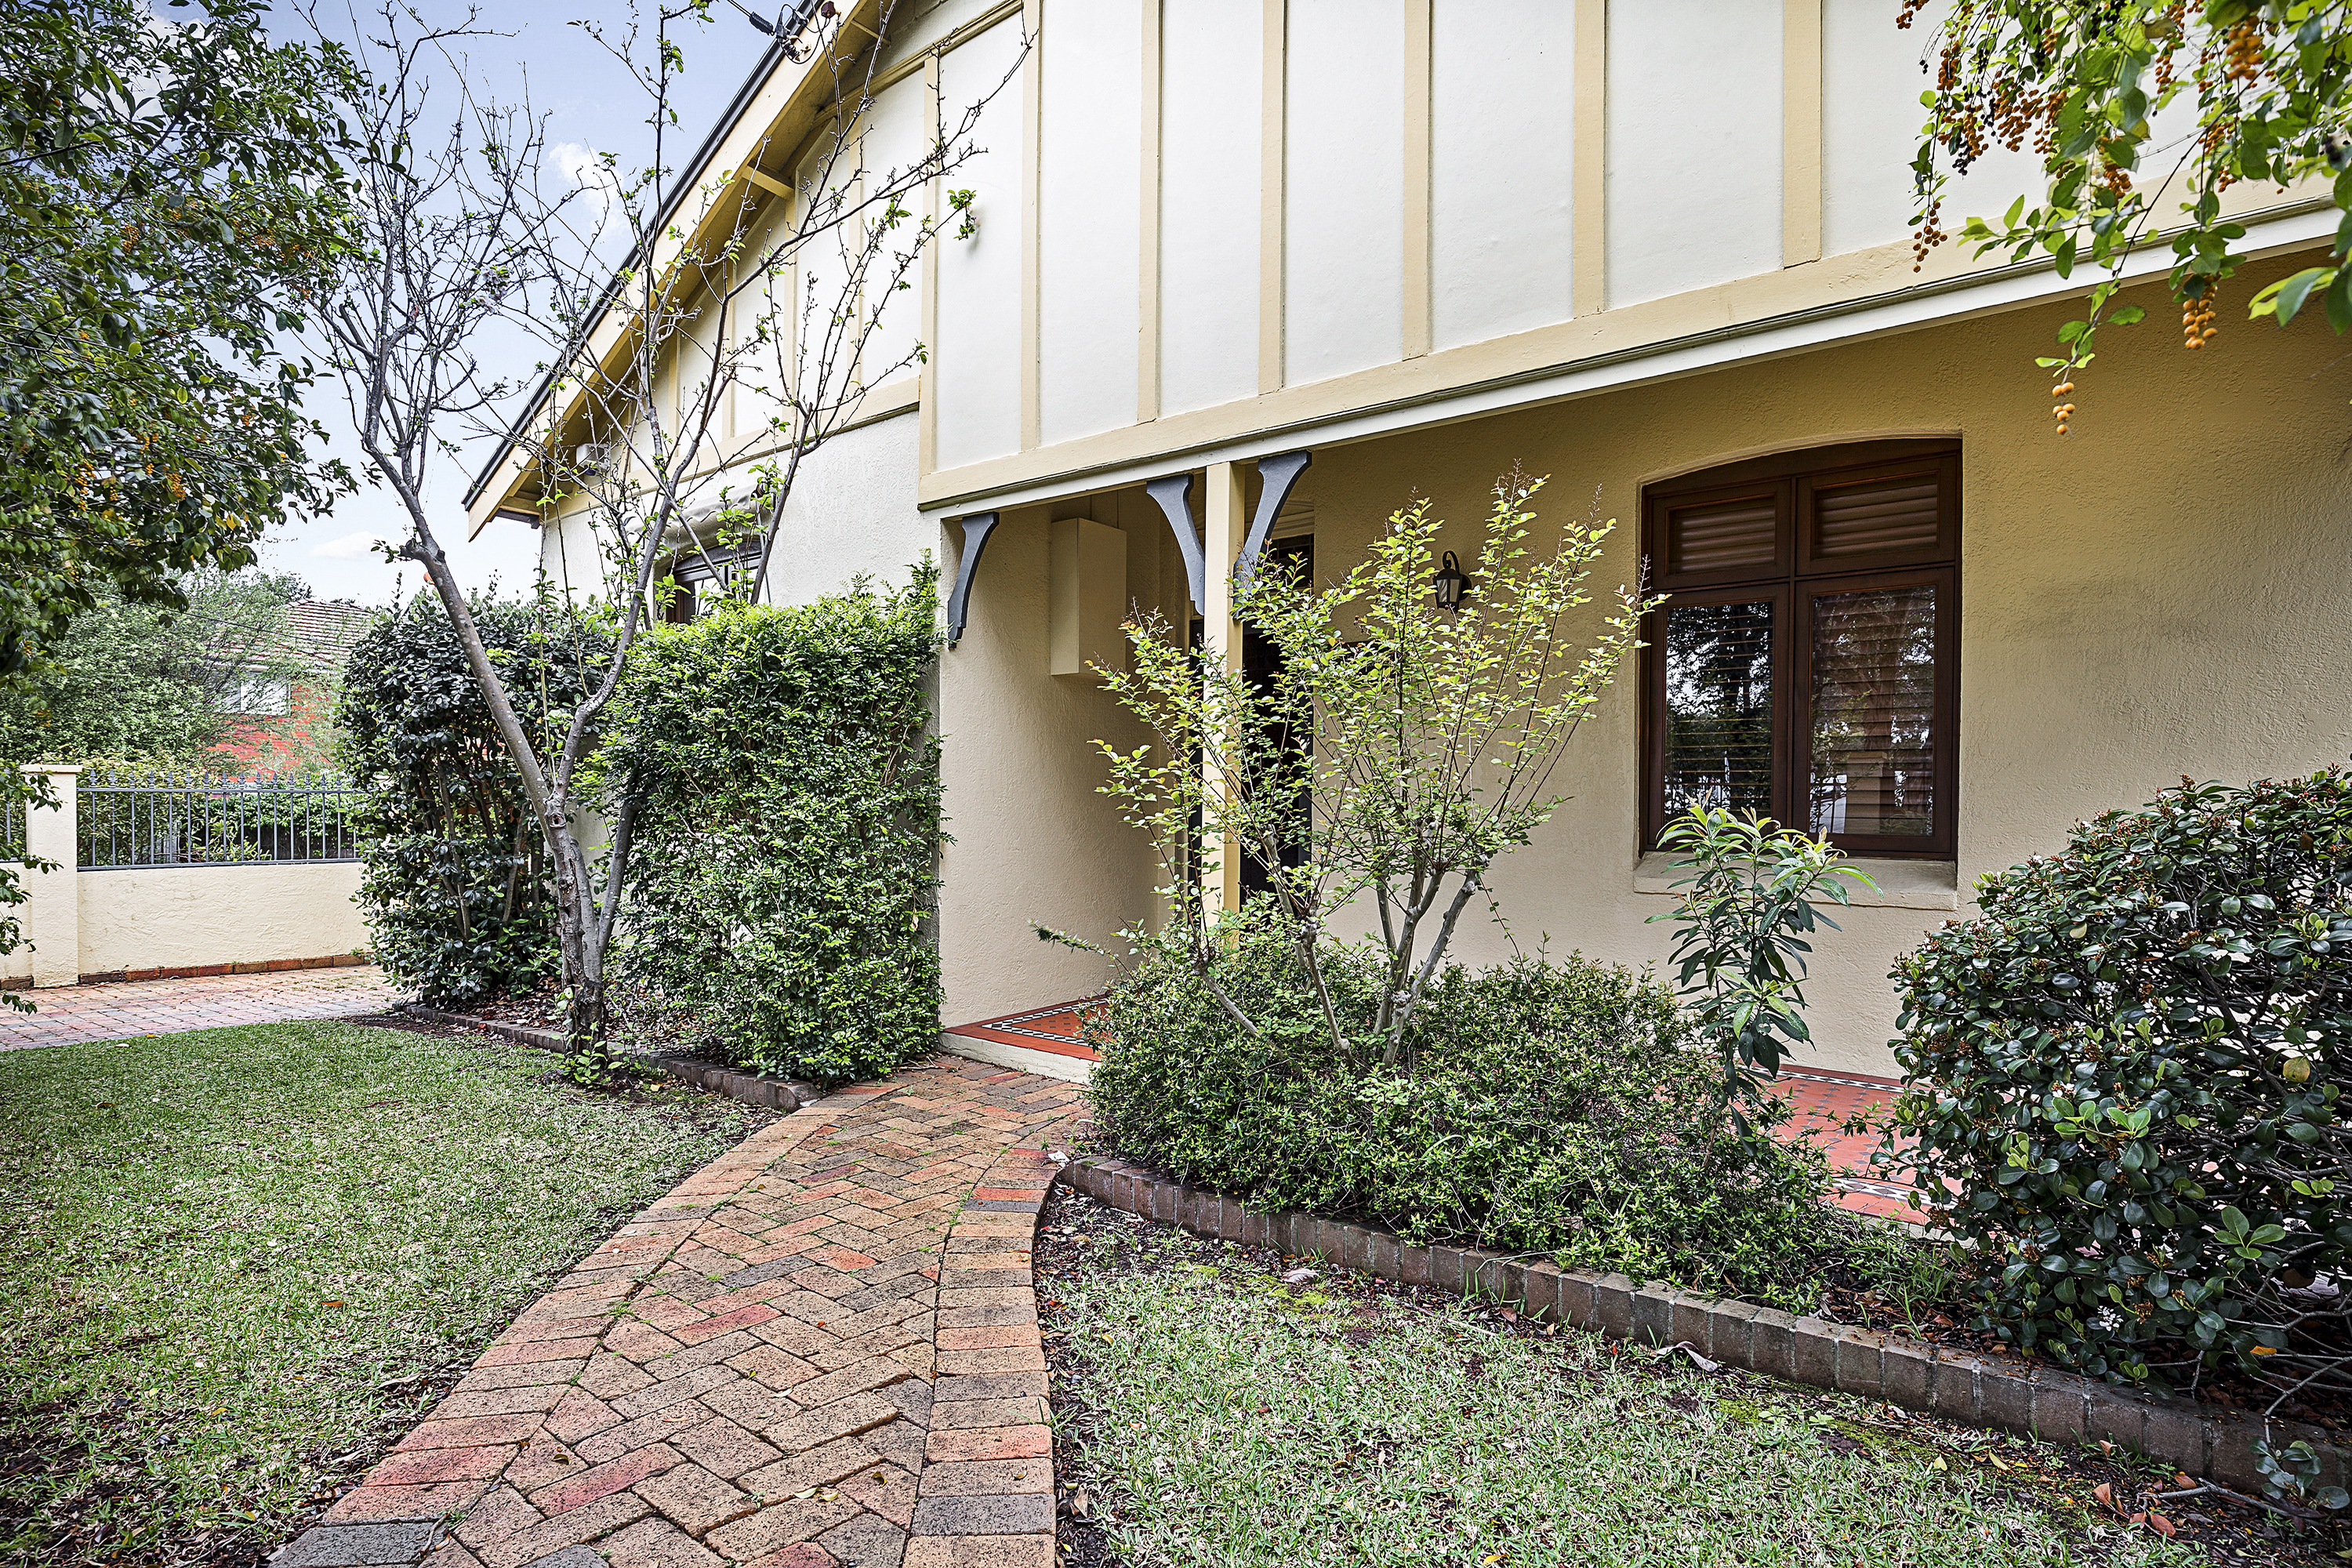 2 Gallipoli Street, Concord